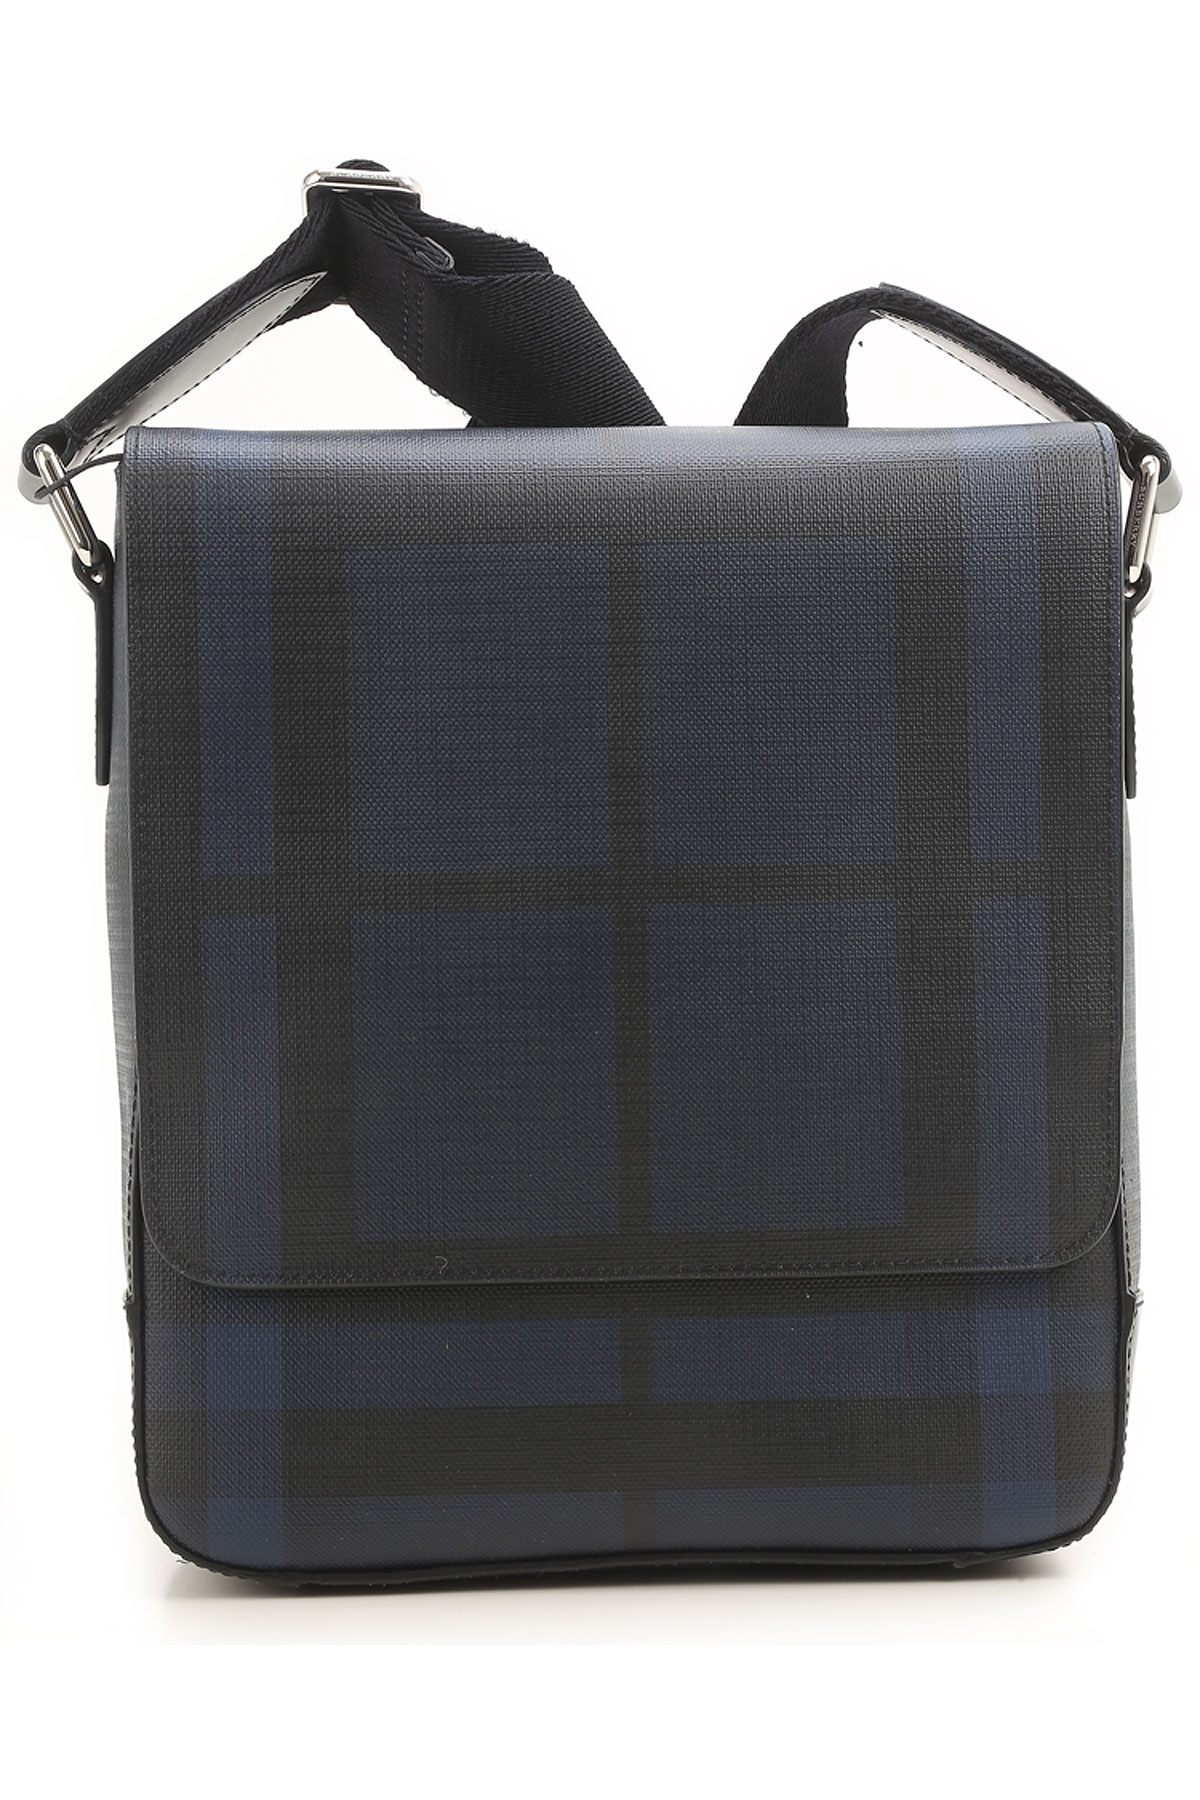 Image of Burberry Briefcases On Sale, navy, Coated Canvas, 2017